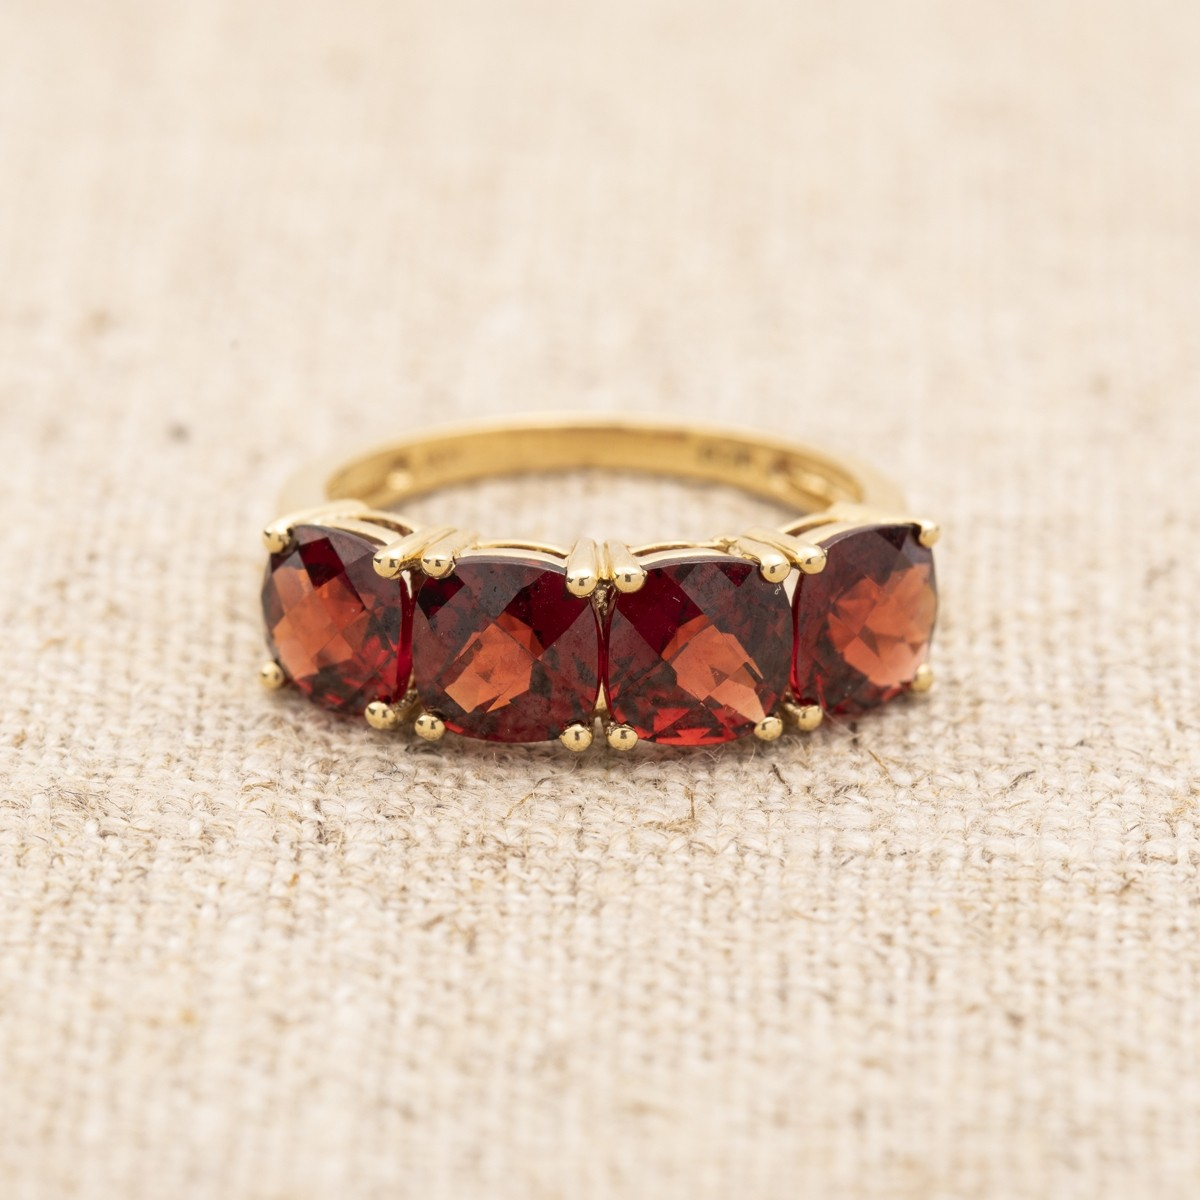 VINTAGE 14KT YELLOW GOLD GARNET GEMSTONE RING